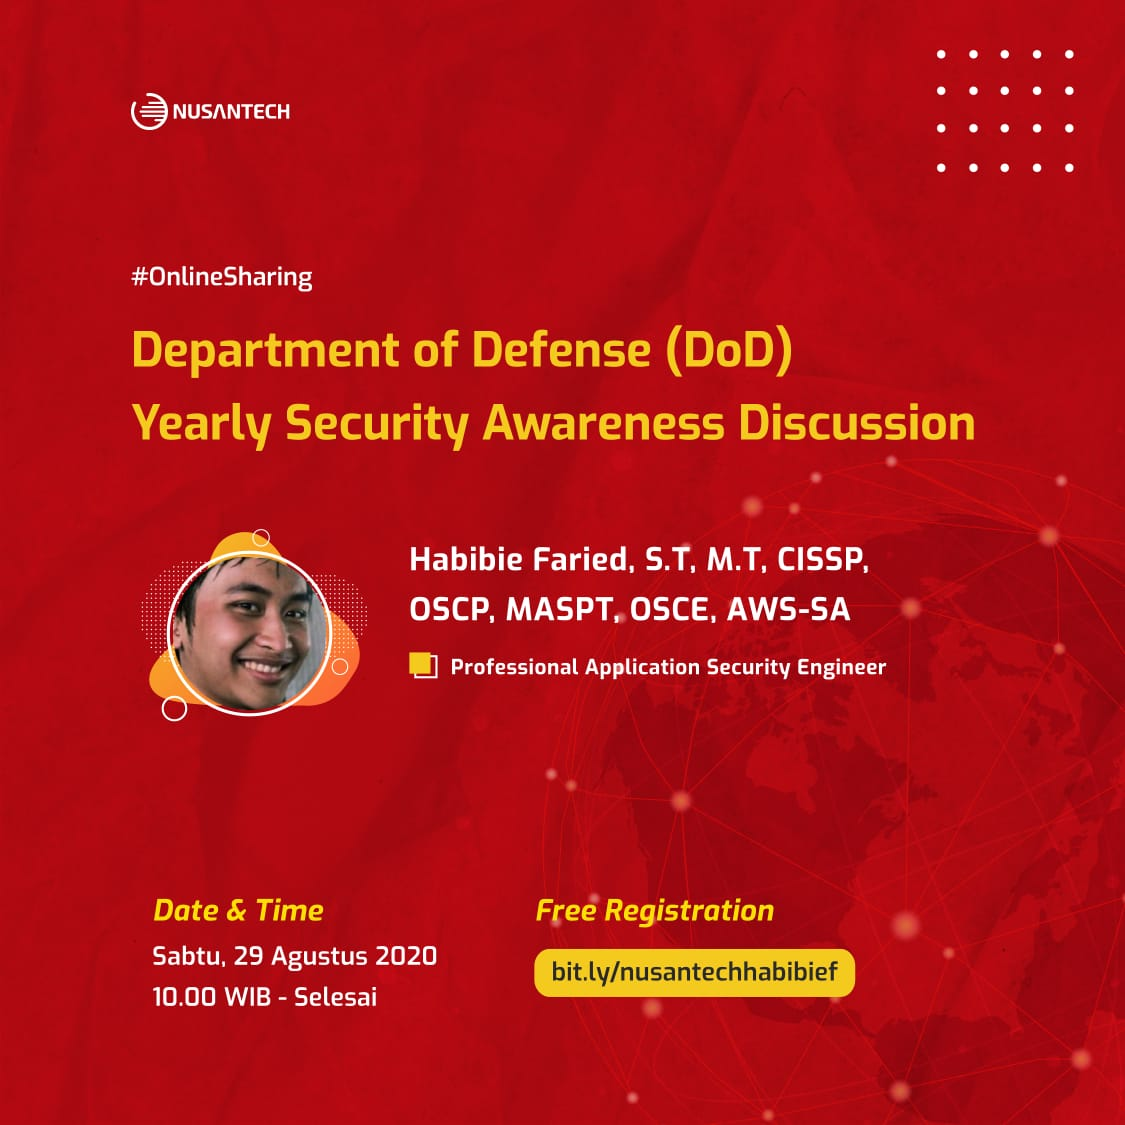 Department of Defense (DoD) Yearly Security Awareness Discussion